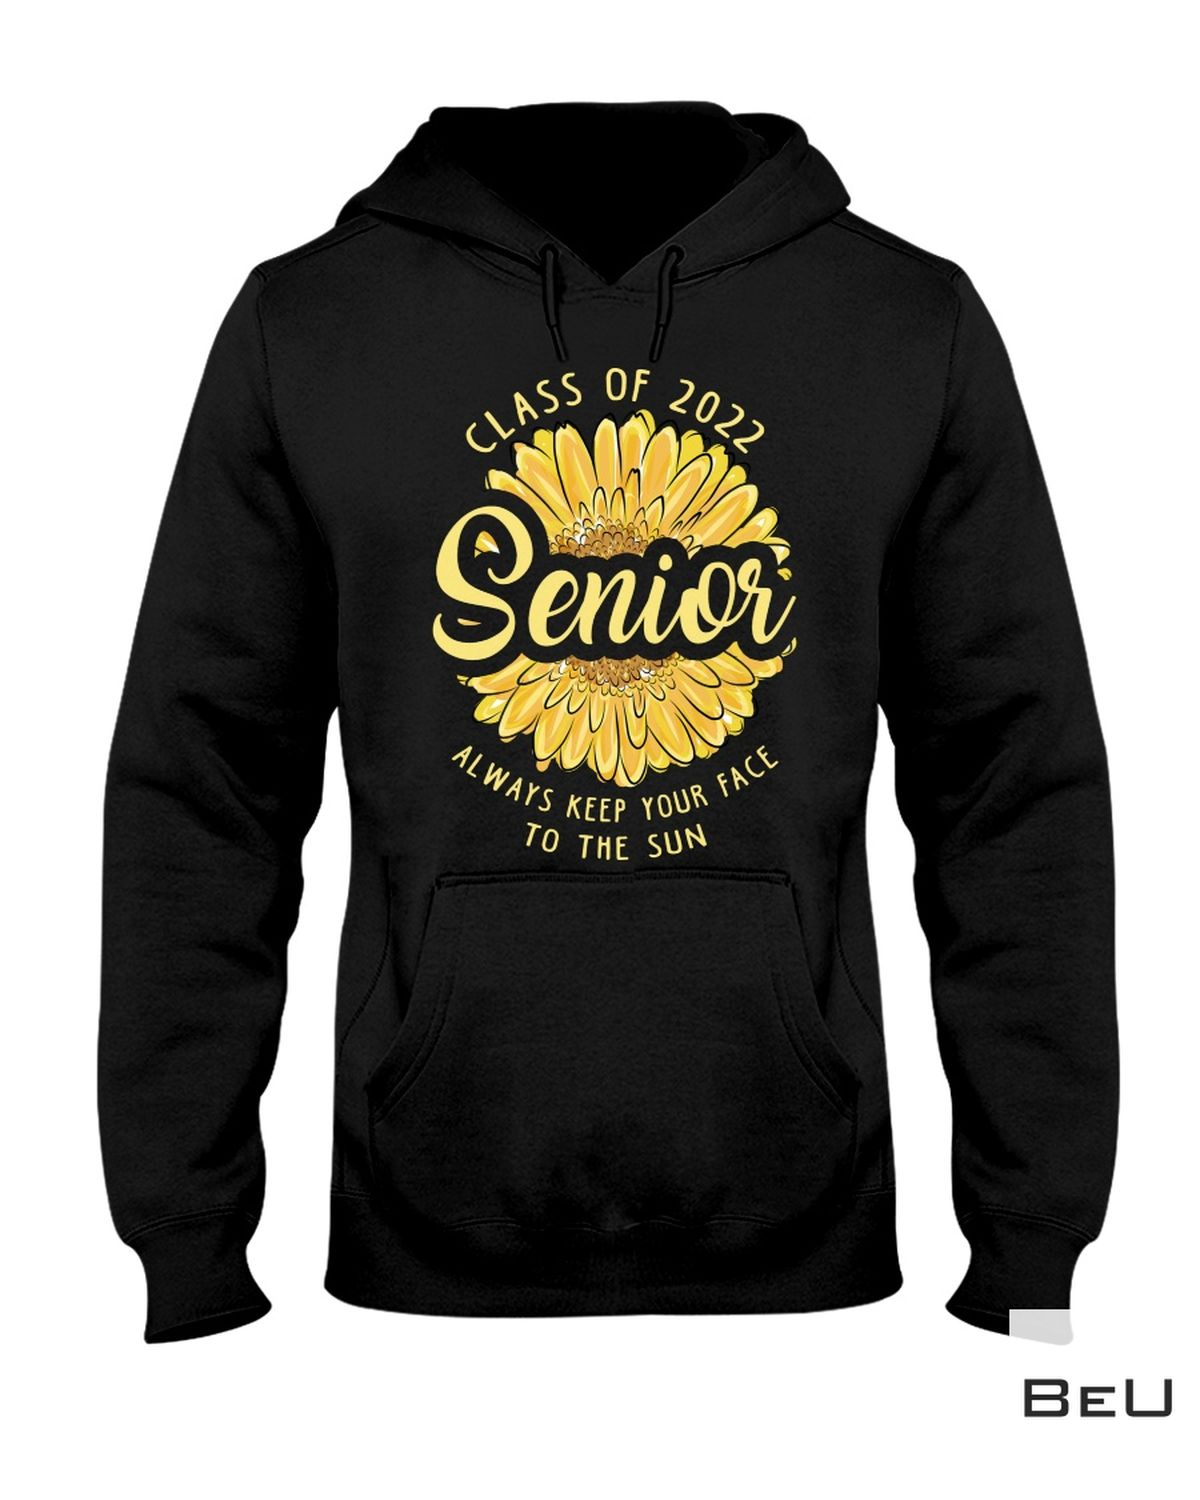 Excellent Senior Class Of 2022 Always Keep Your Face To The Sun Shirt, hoodie